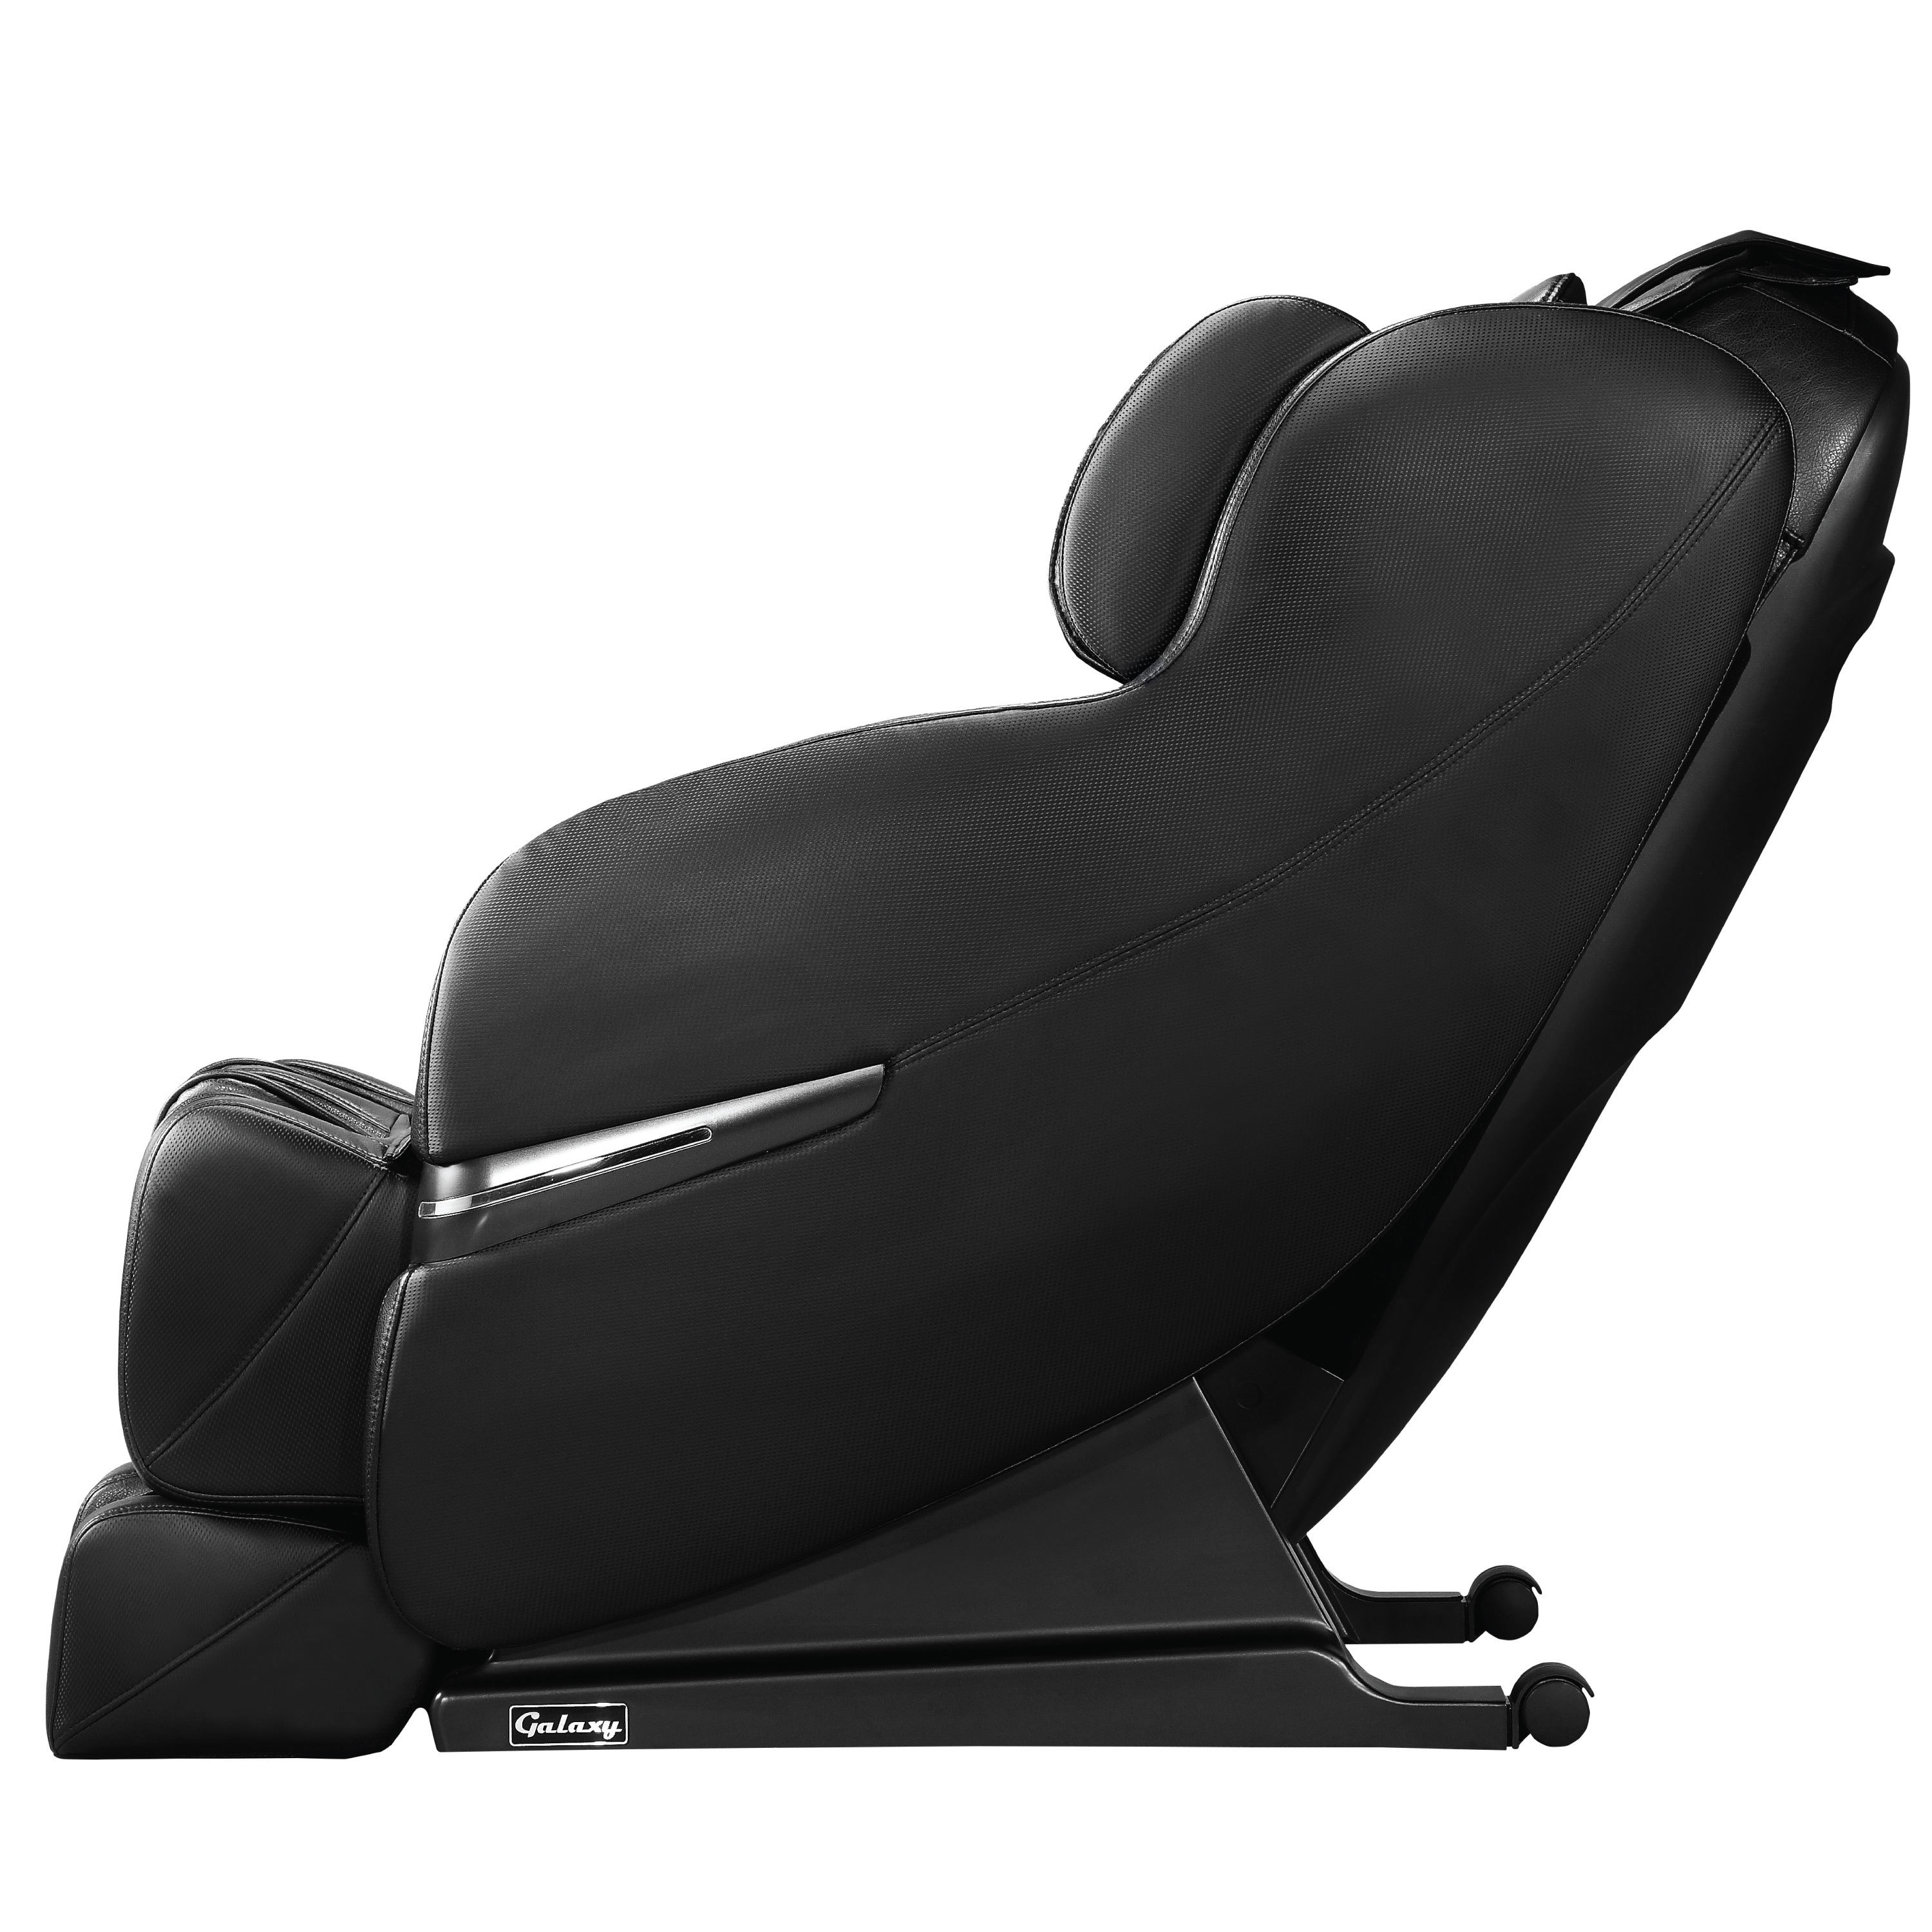 ec 06 massage chair conference table and chairs set osaki keeps beeping  check now blog